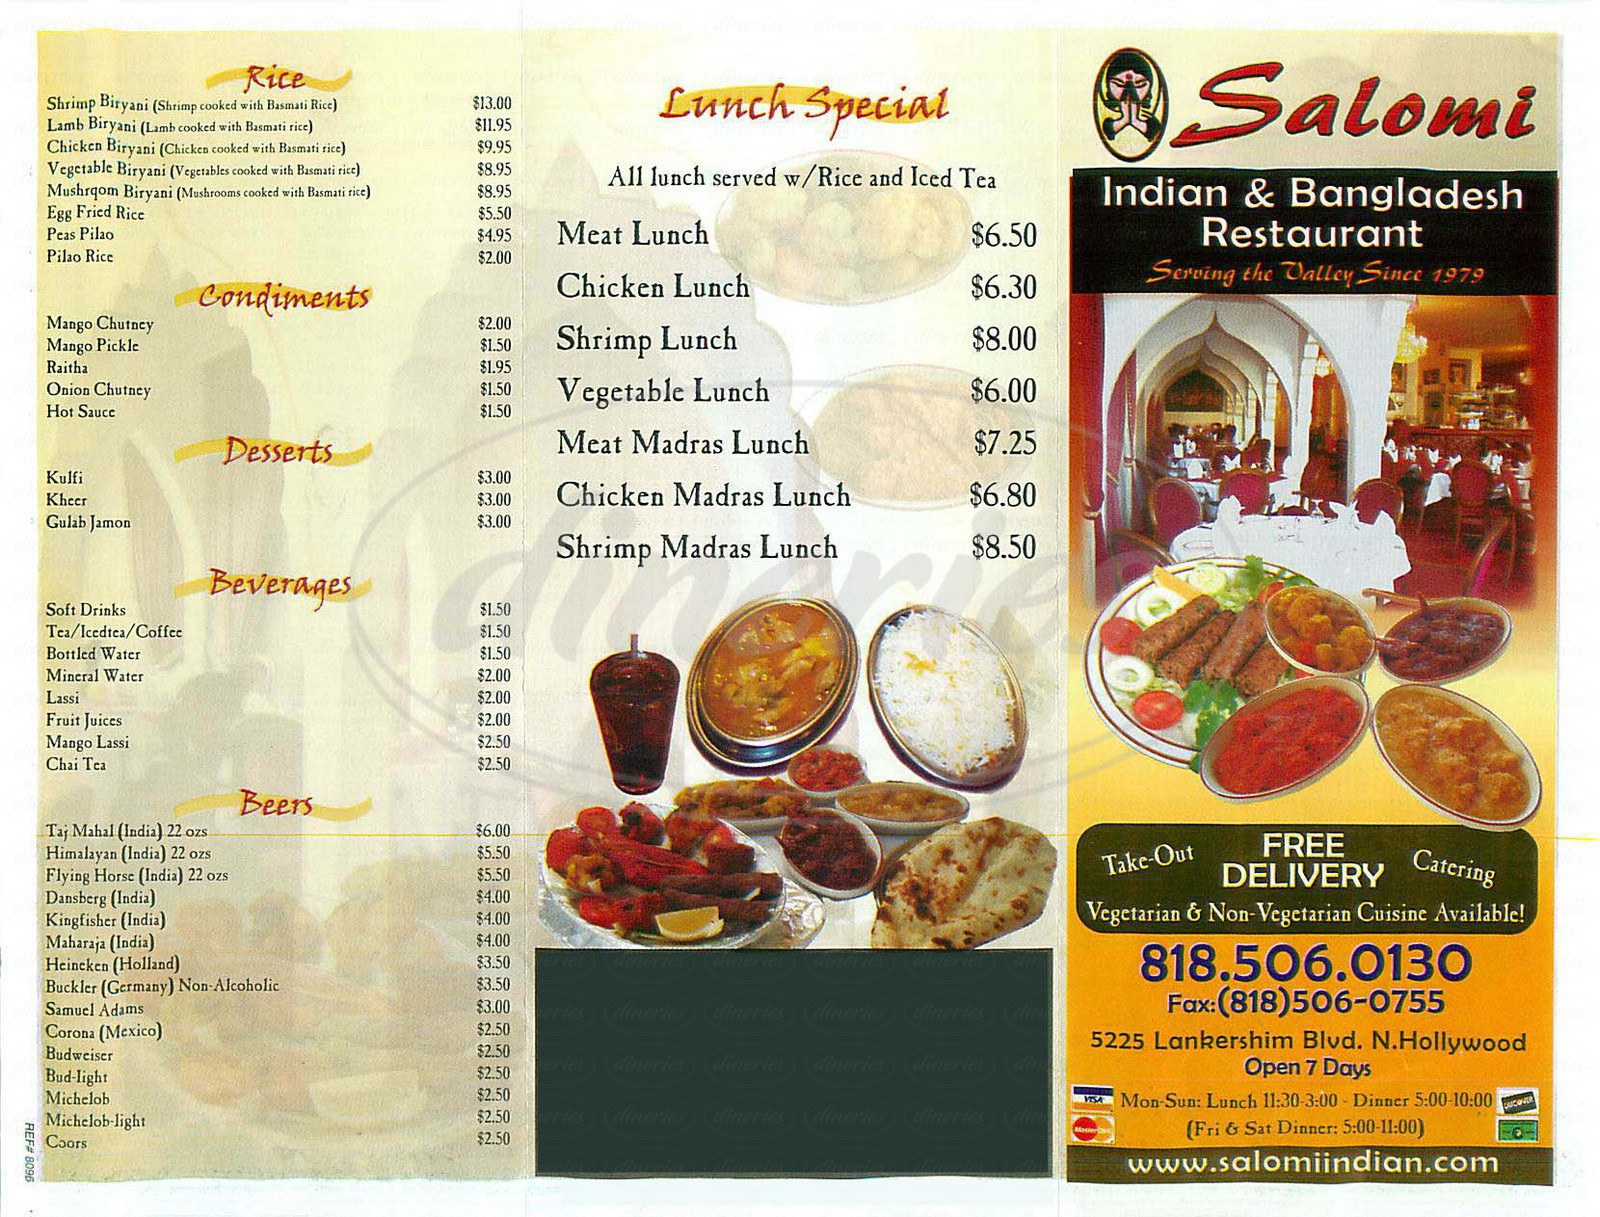 menu for Salomi Indian & Bangladesh Restaurant